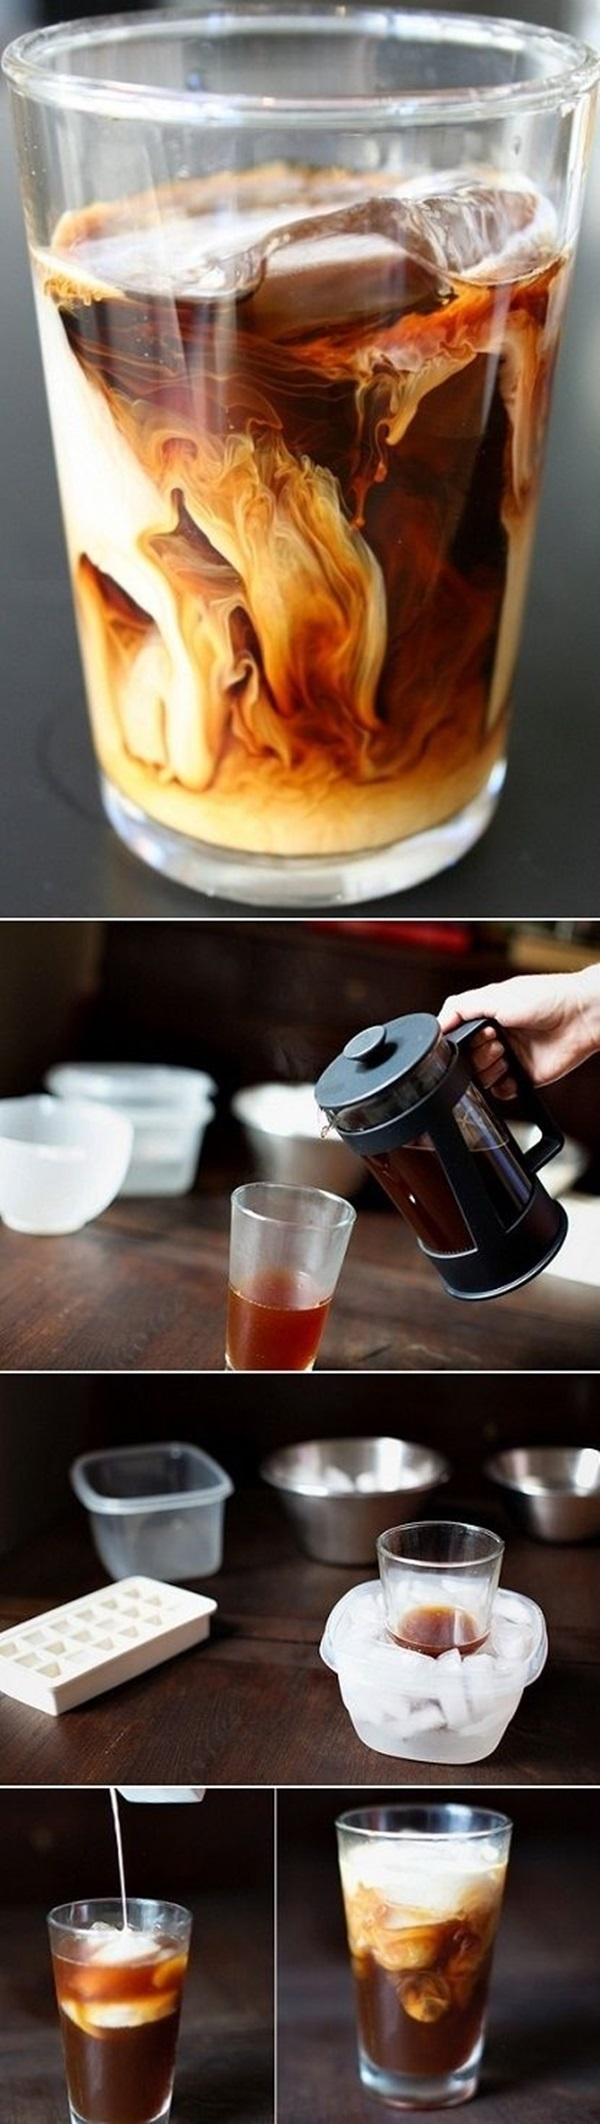 Clever Cooking Hacks (14)